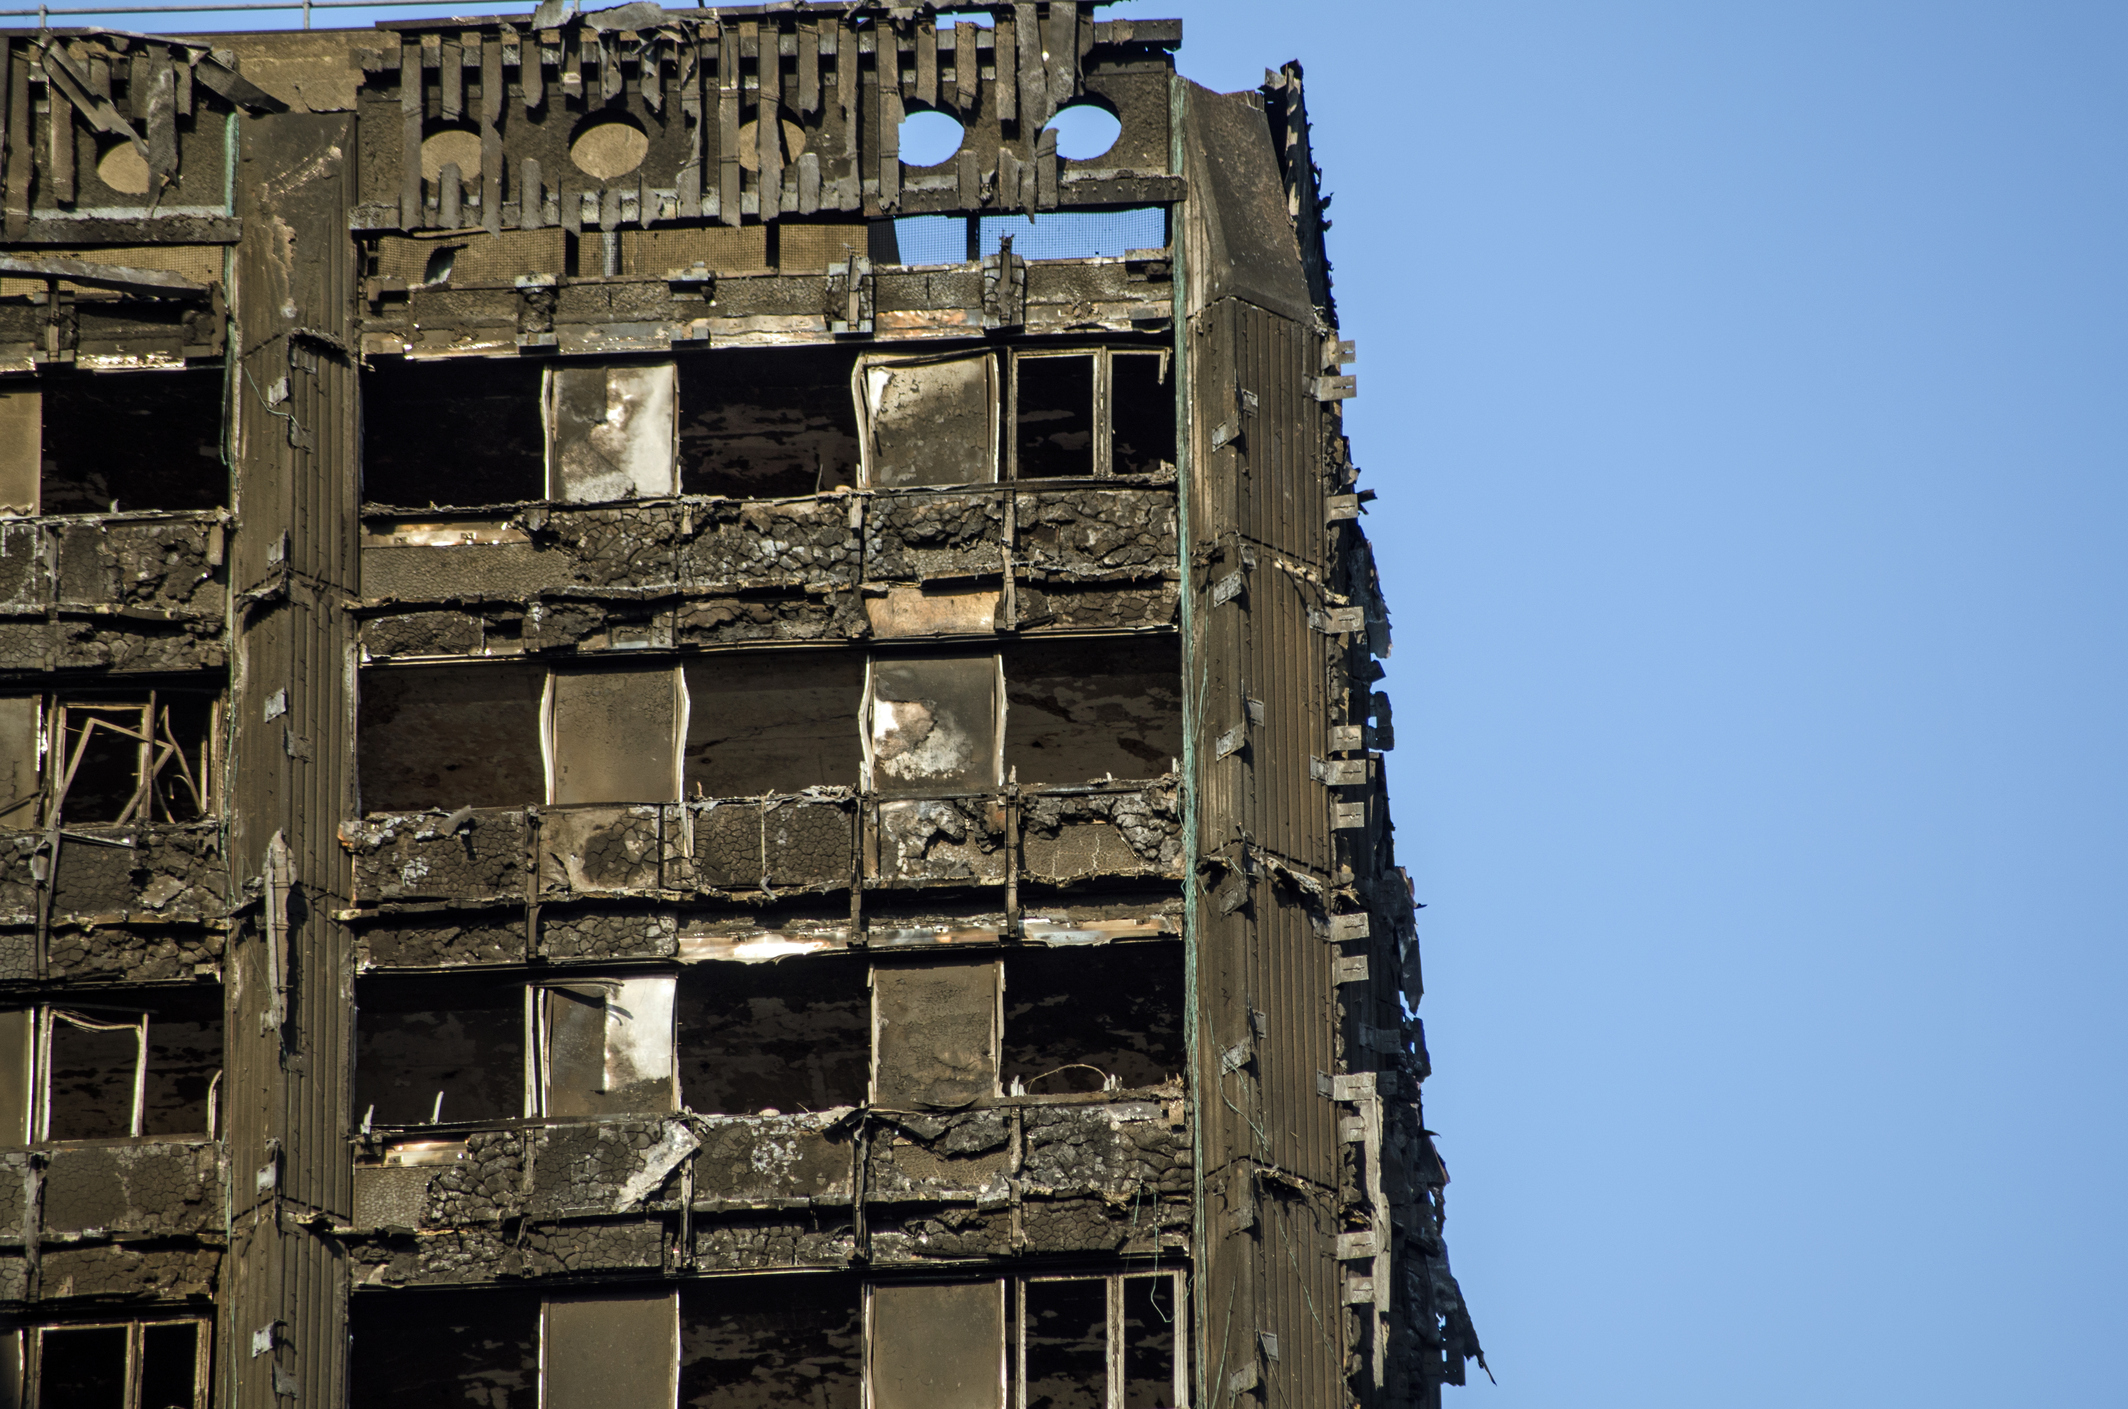 A fit for human habitation amendment may be made following the Grenfell Tower fire - Central Housing Group